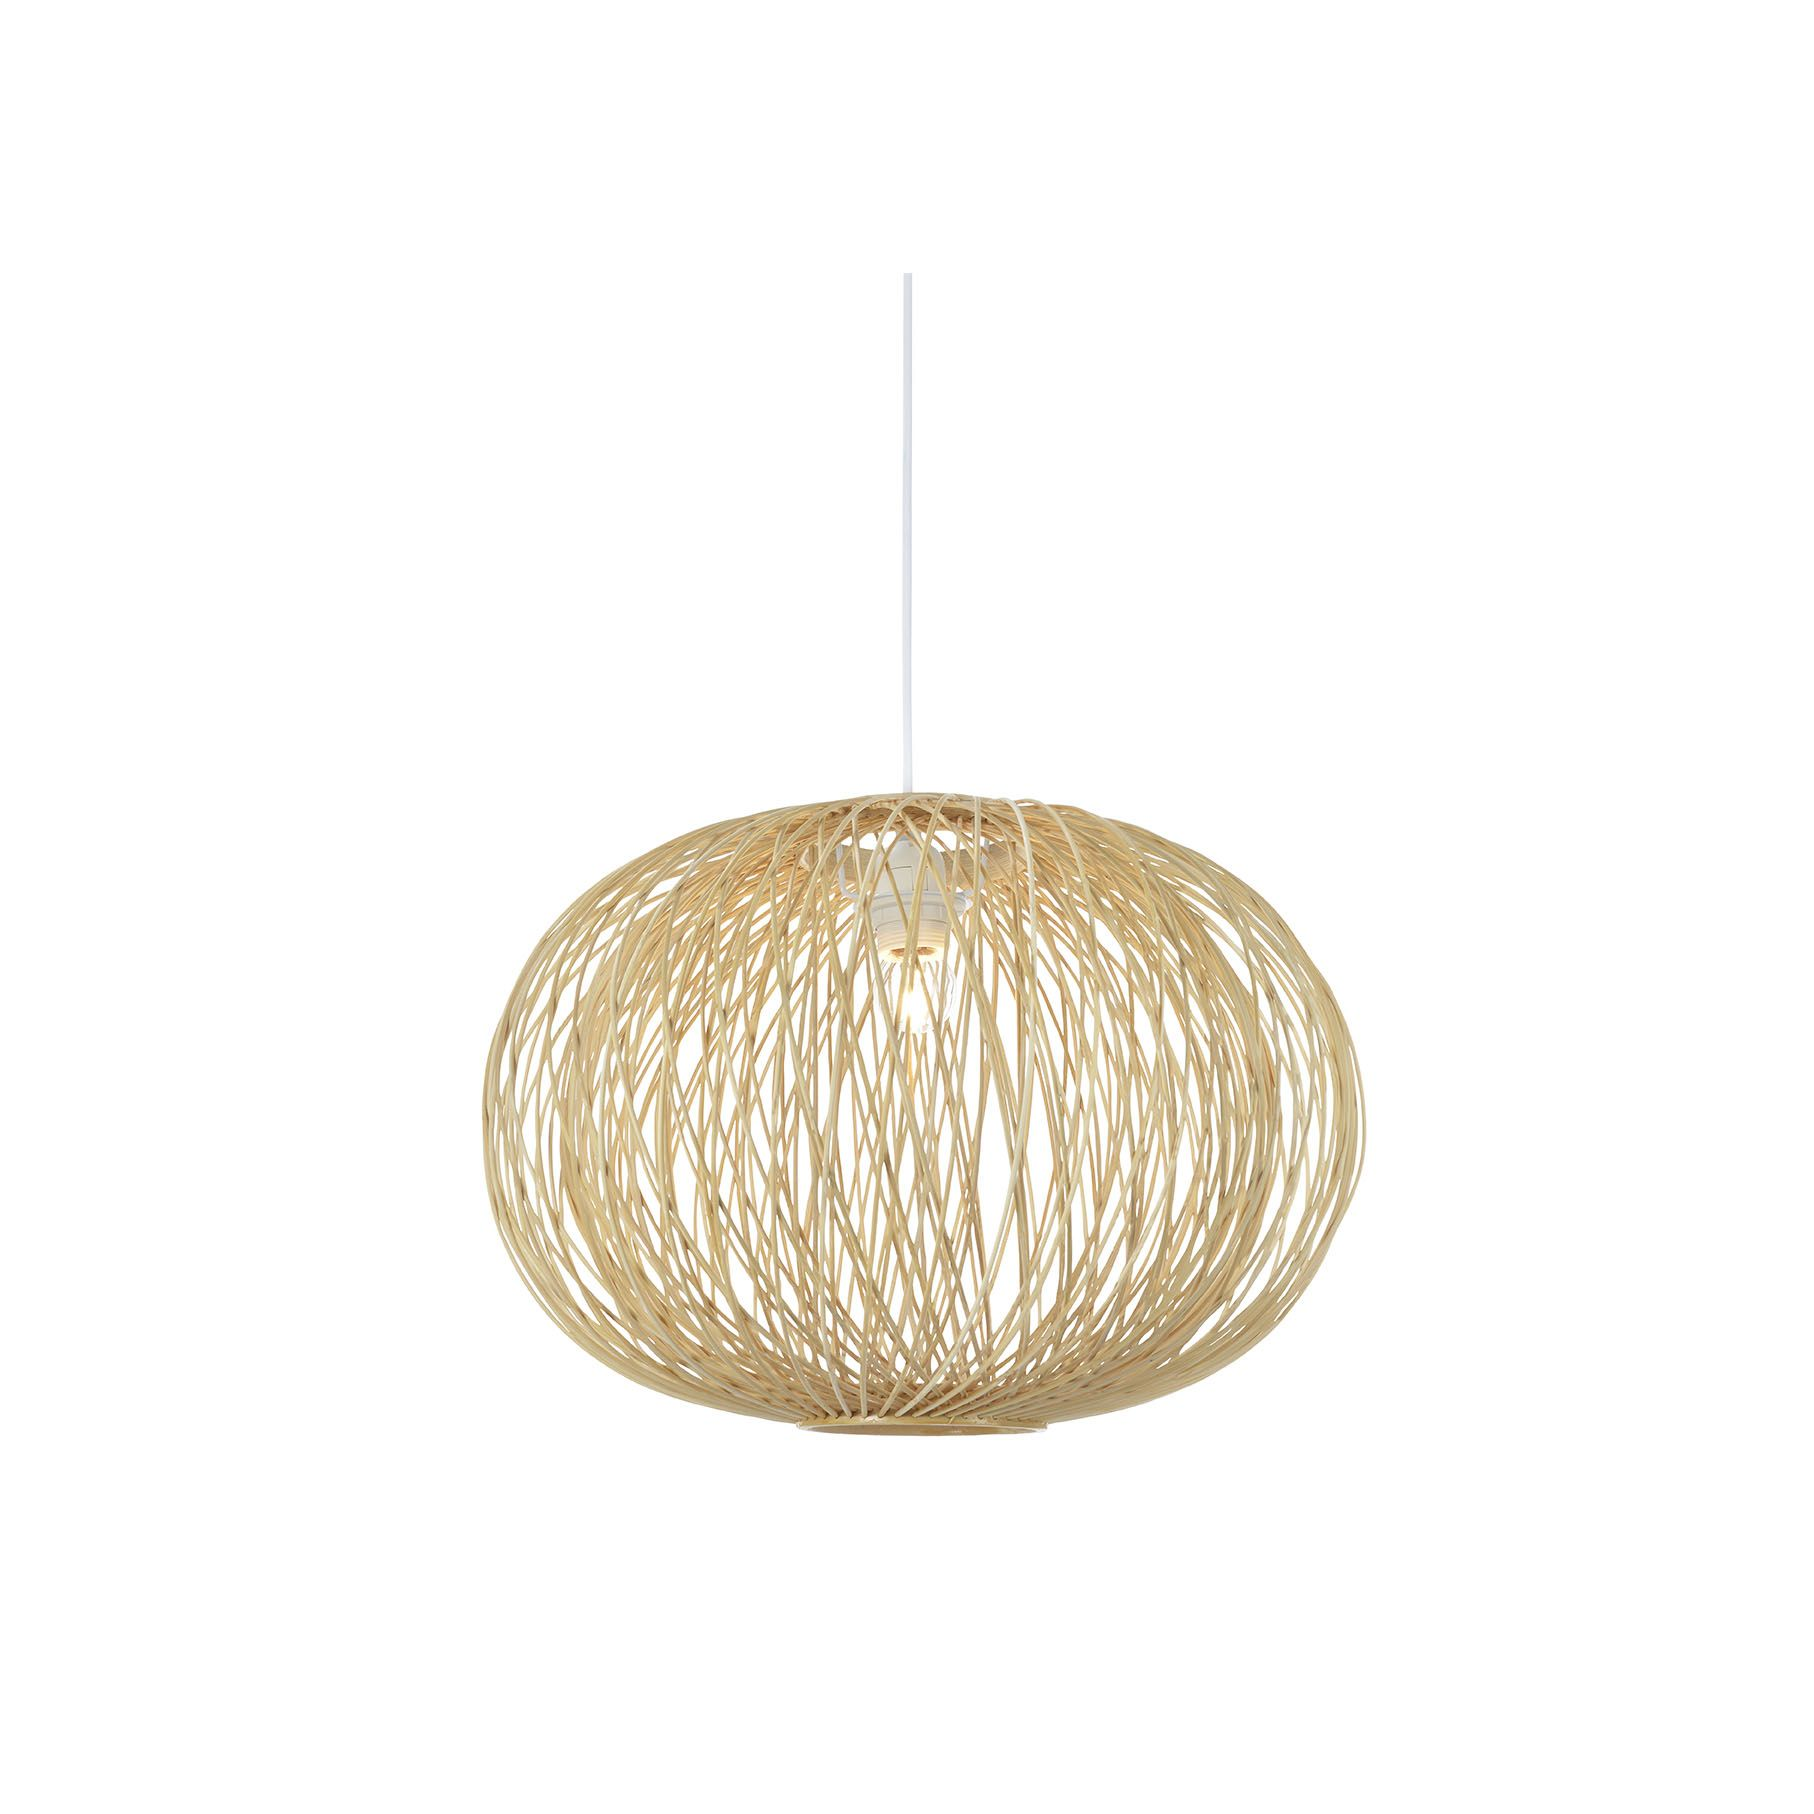 Suspension Luminaire Castorama Suspension En Rotin Albarella E27 42w H 139cm Castorama